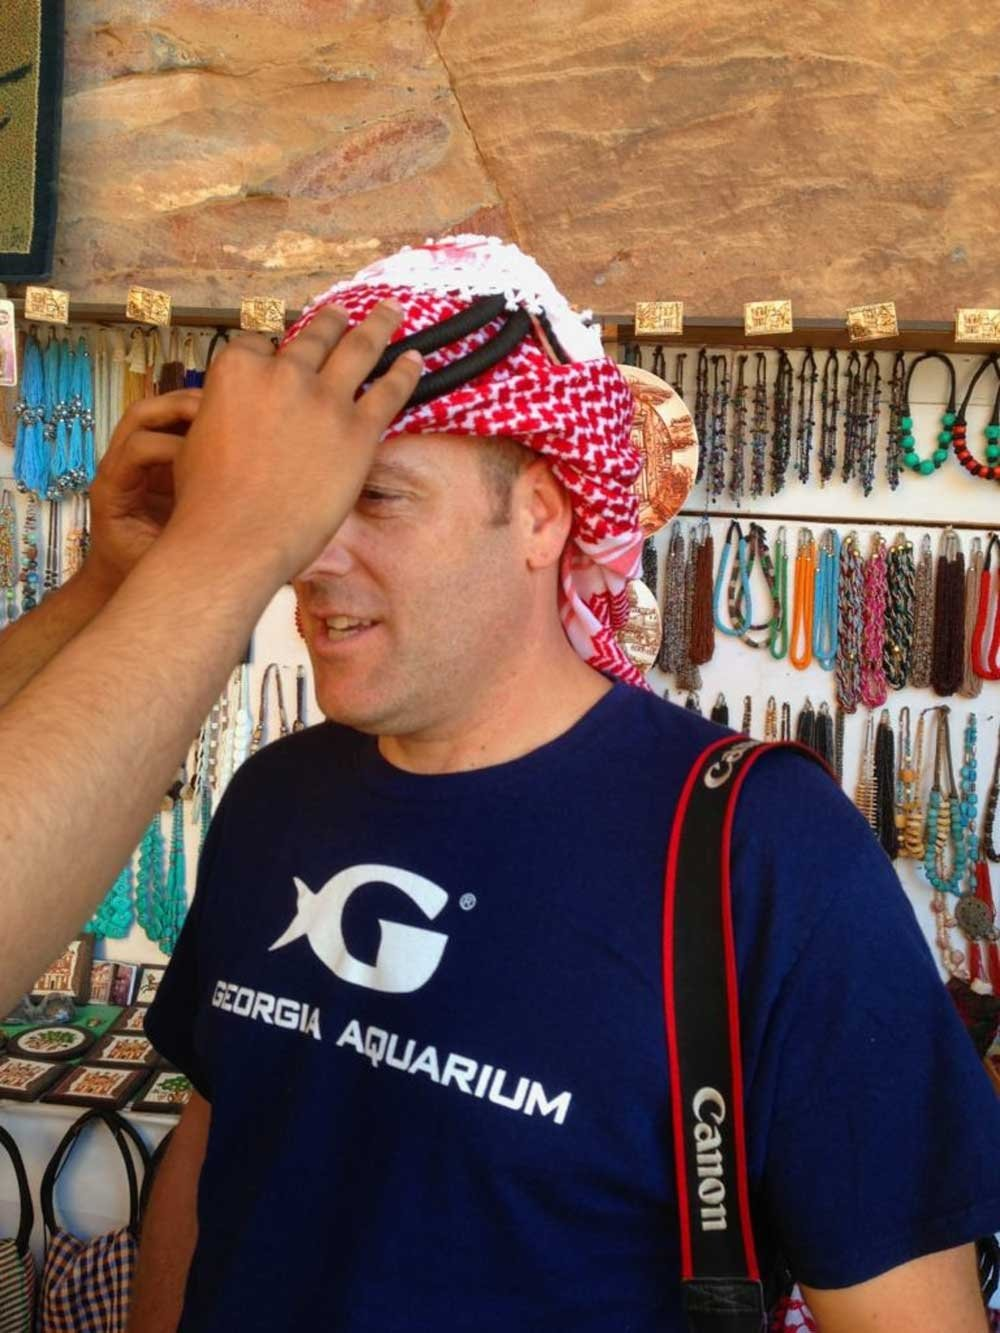 Travel attitude: Traditional Jordanian head scarf